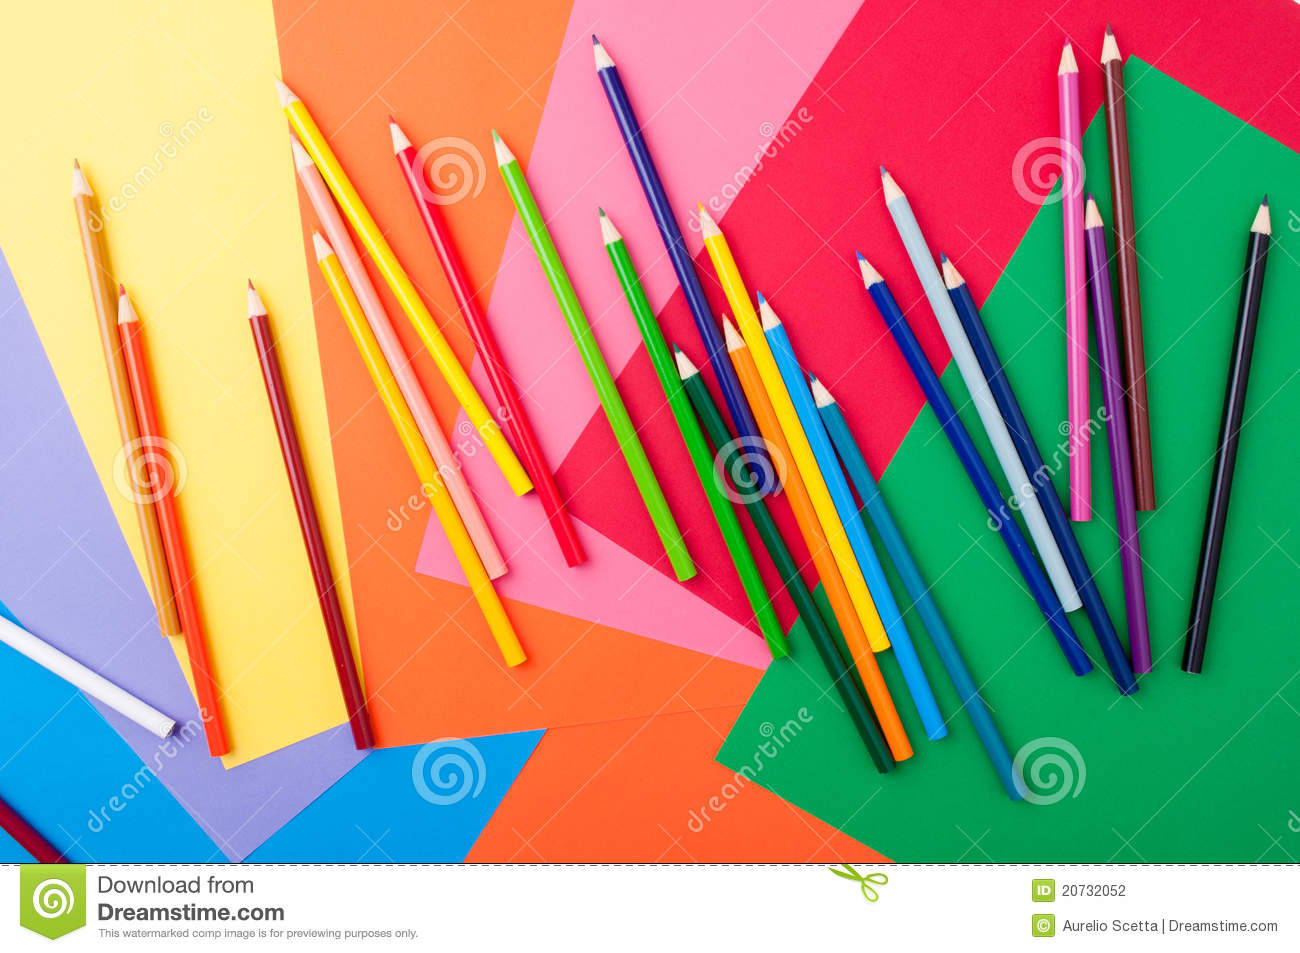 Arts and crafts supplies stock photography image 20732052 for Arts and crafts supplies online